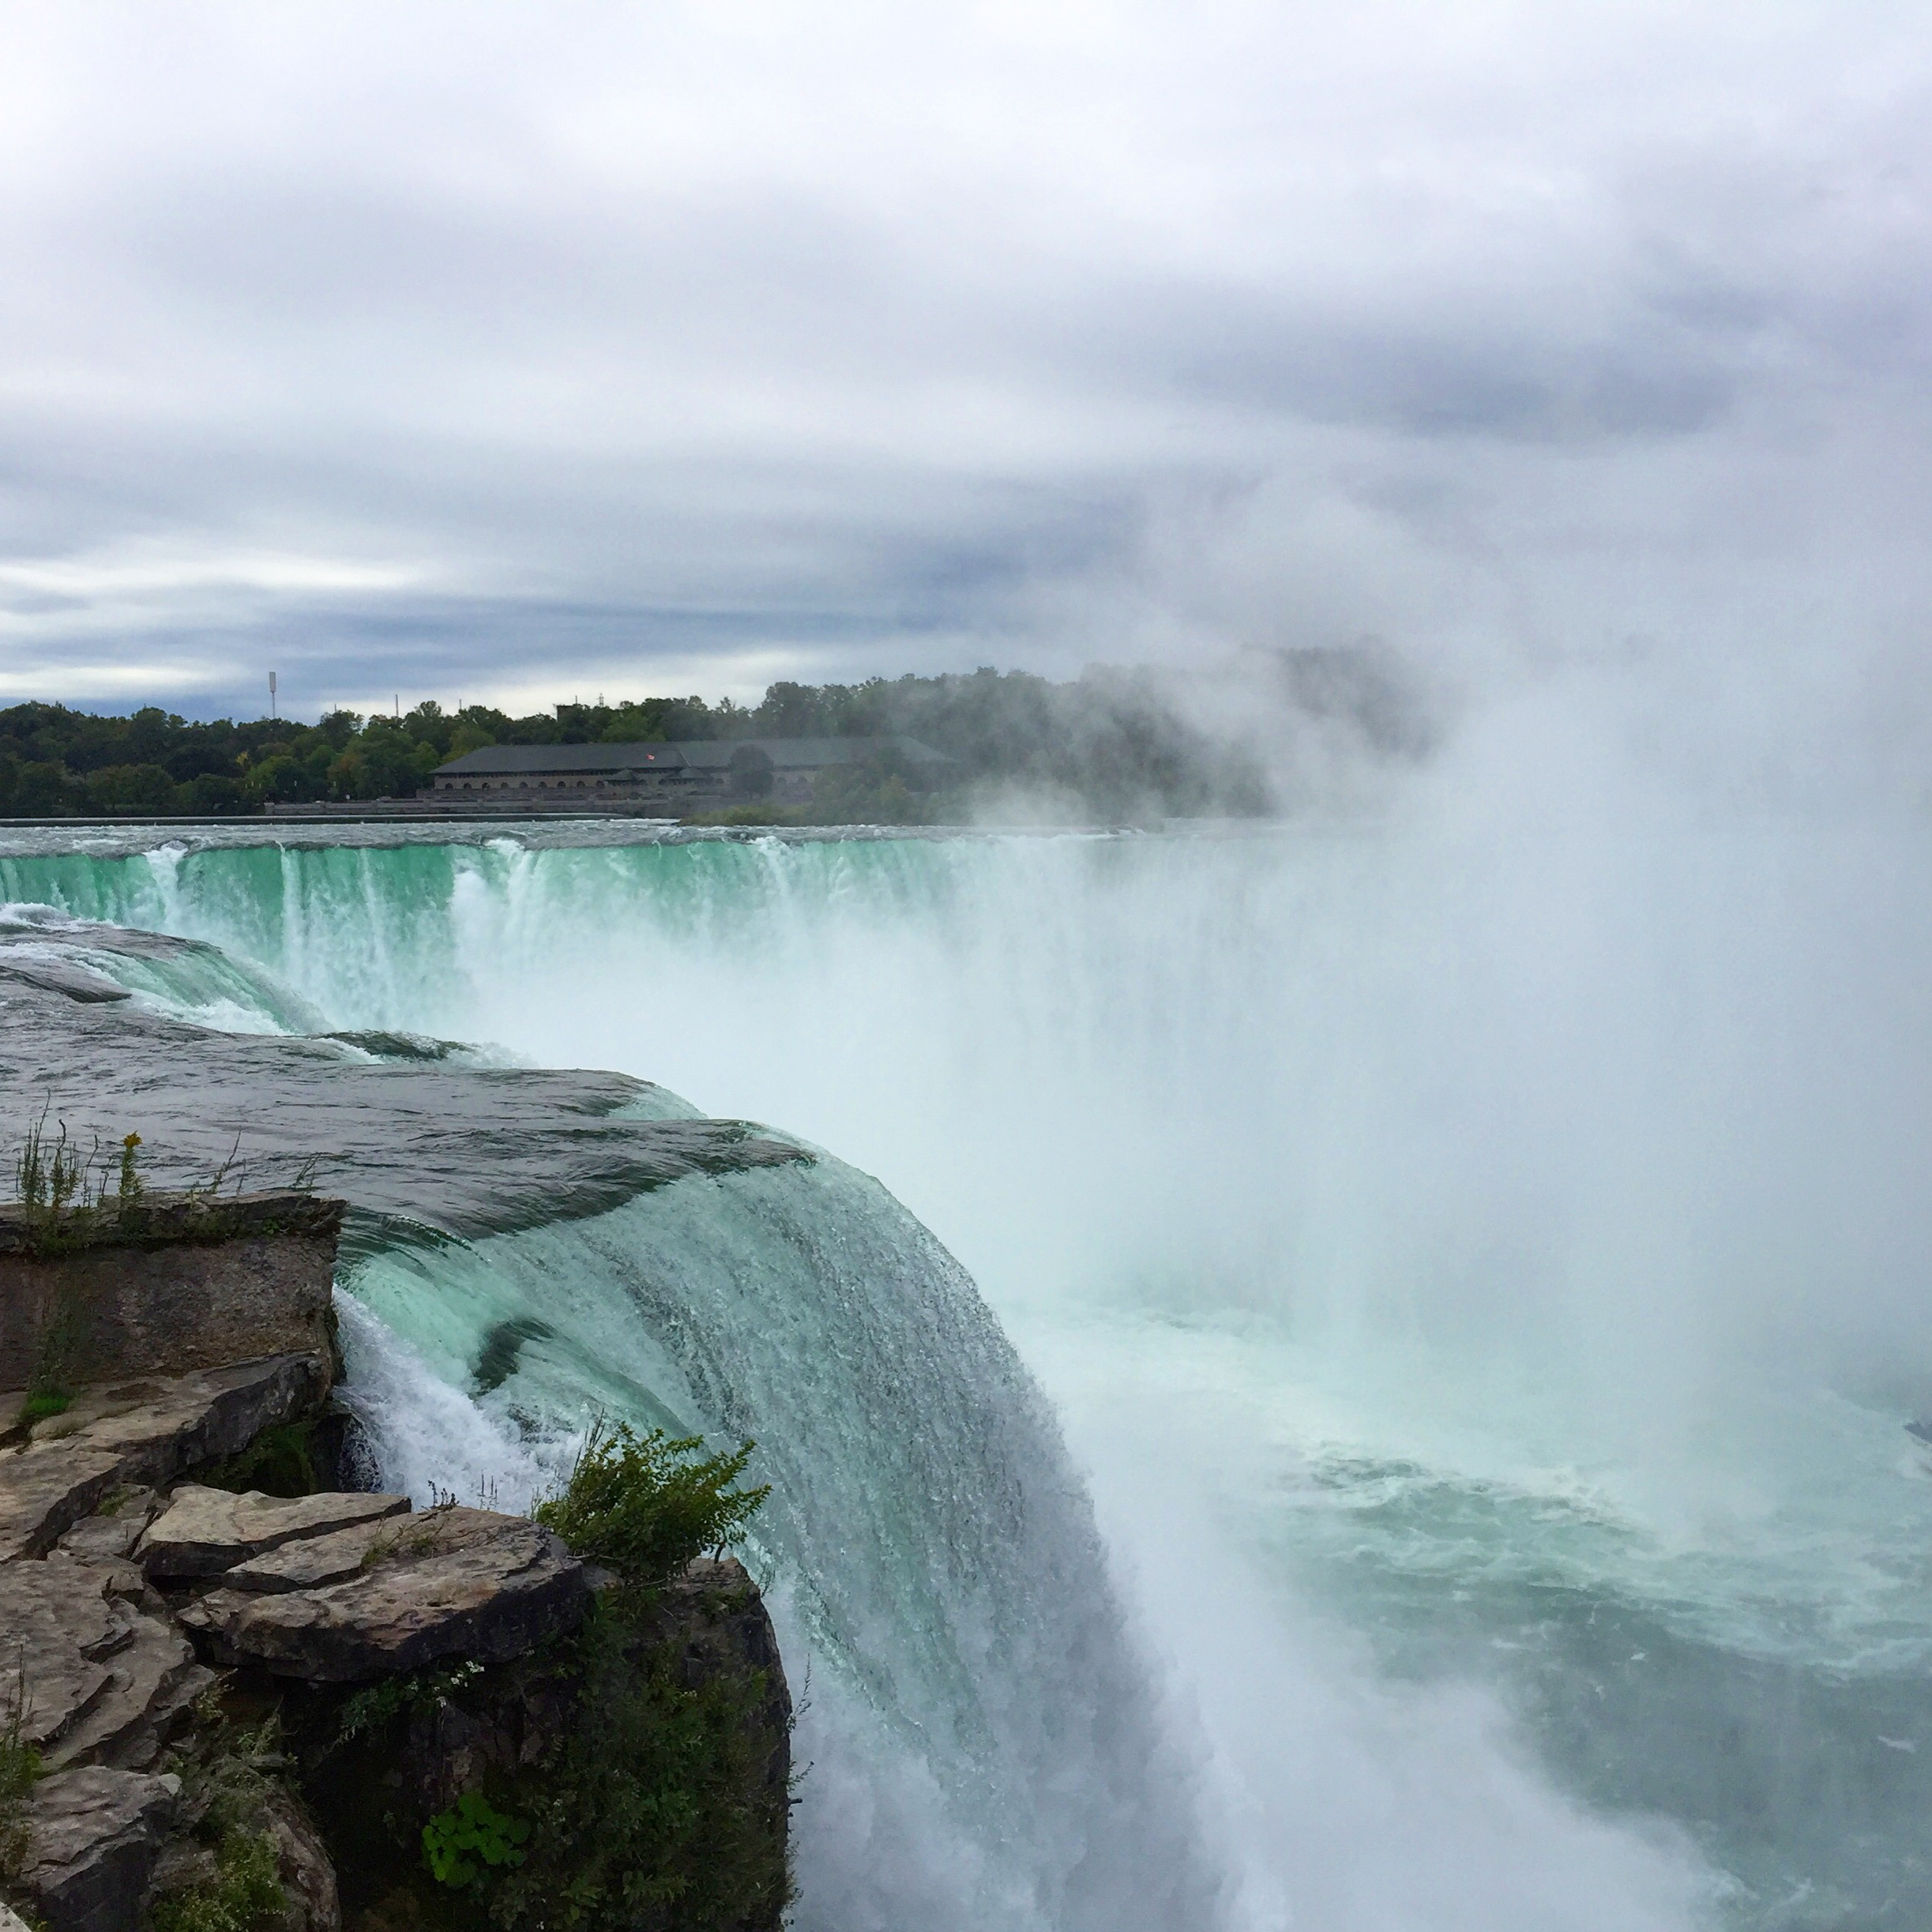 A side view of Horseshoe Falls.